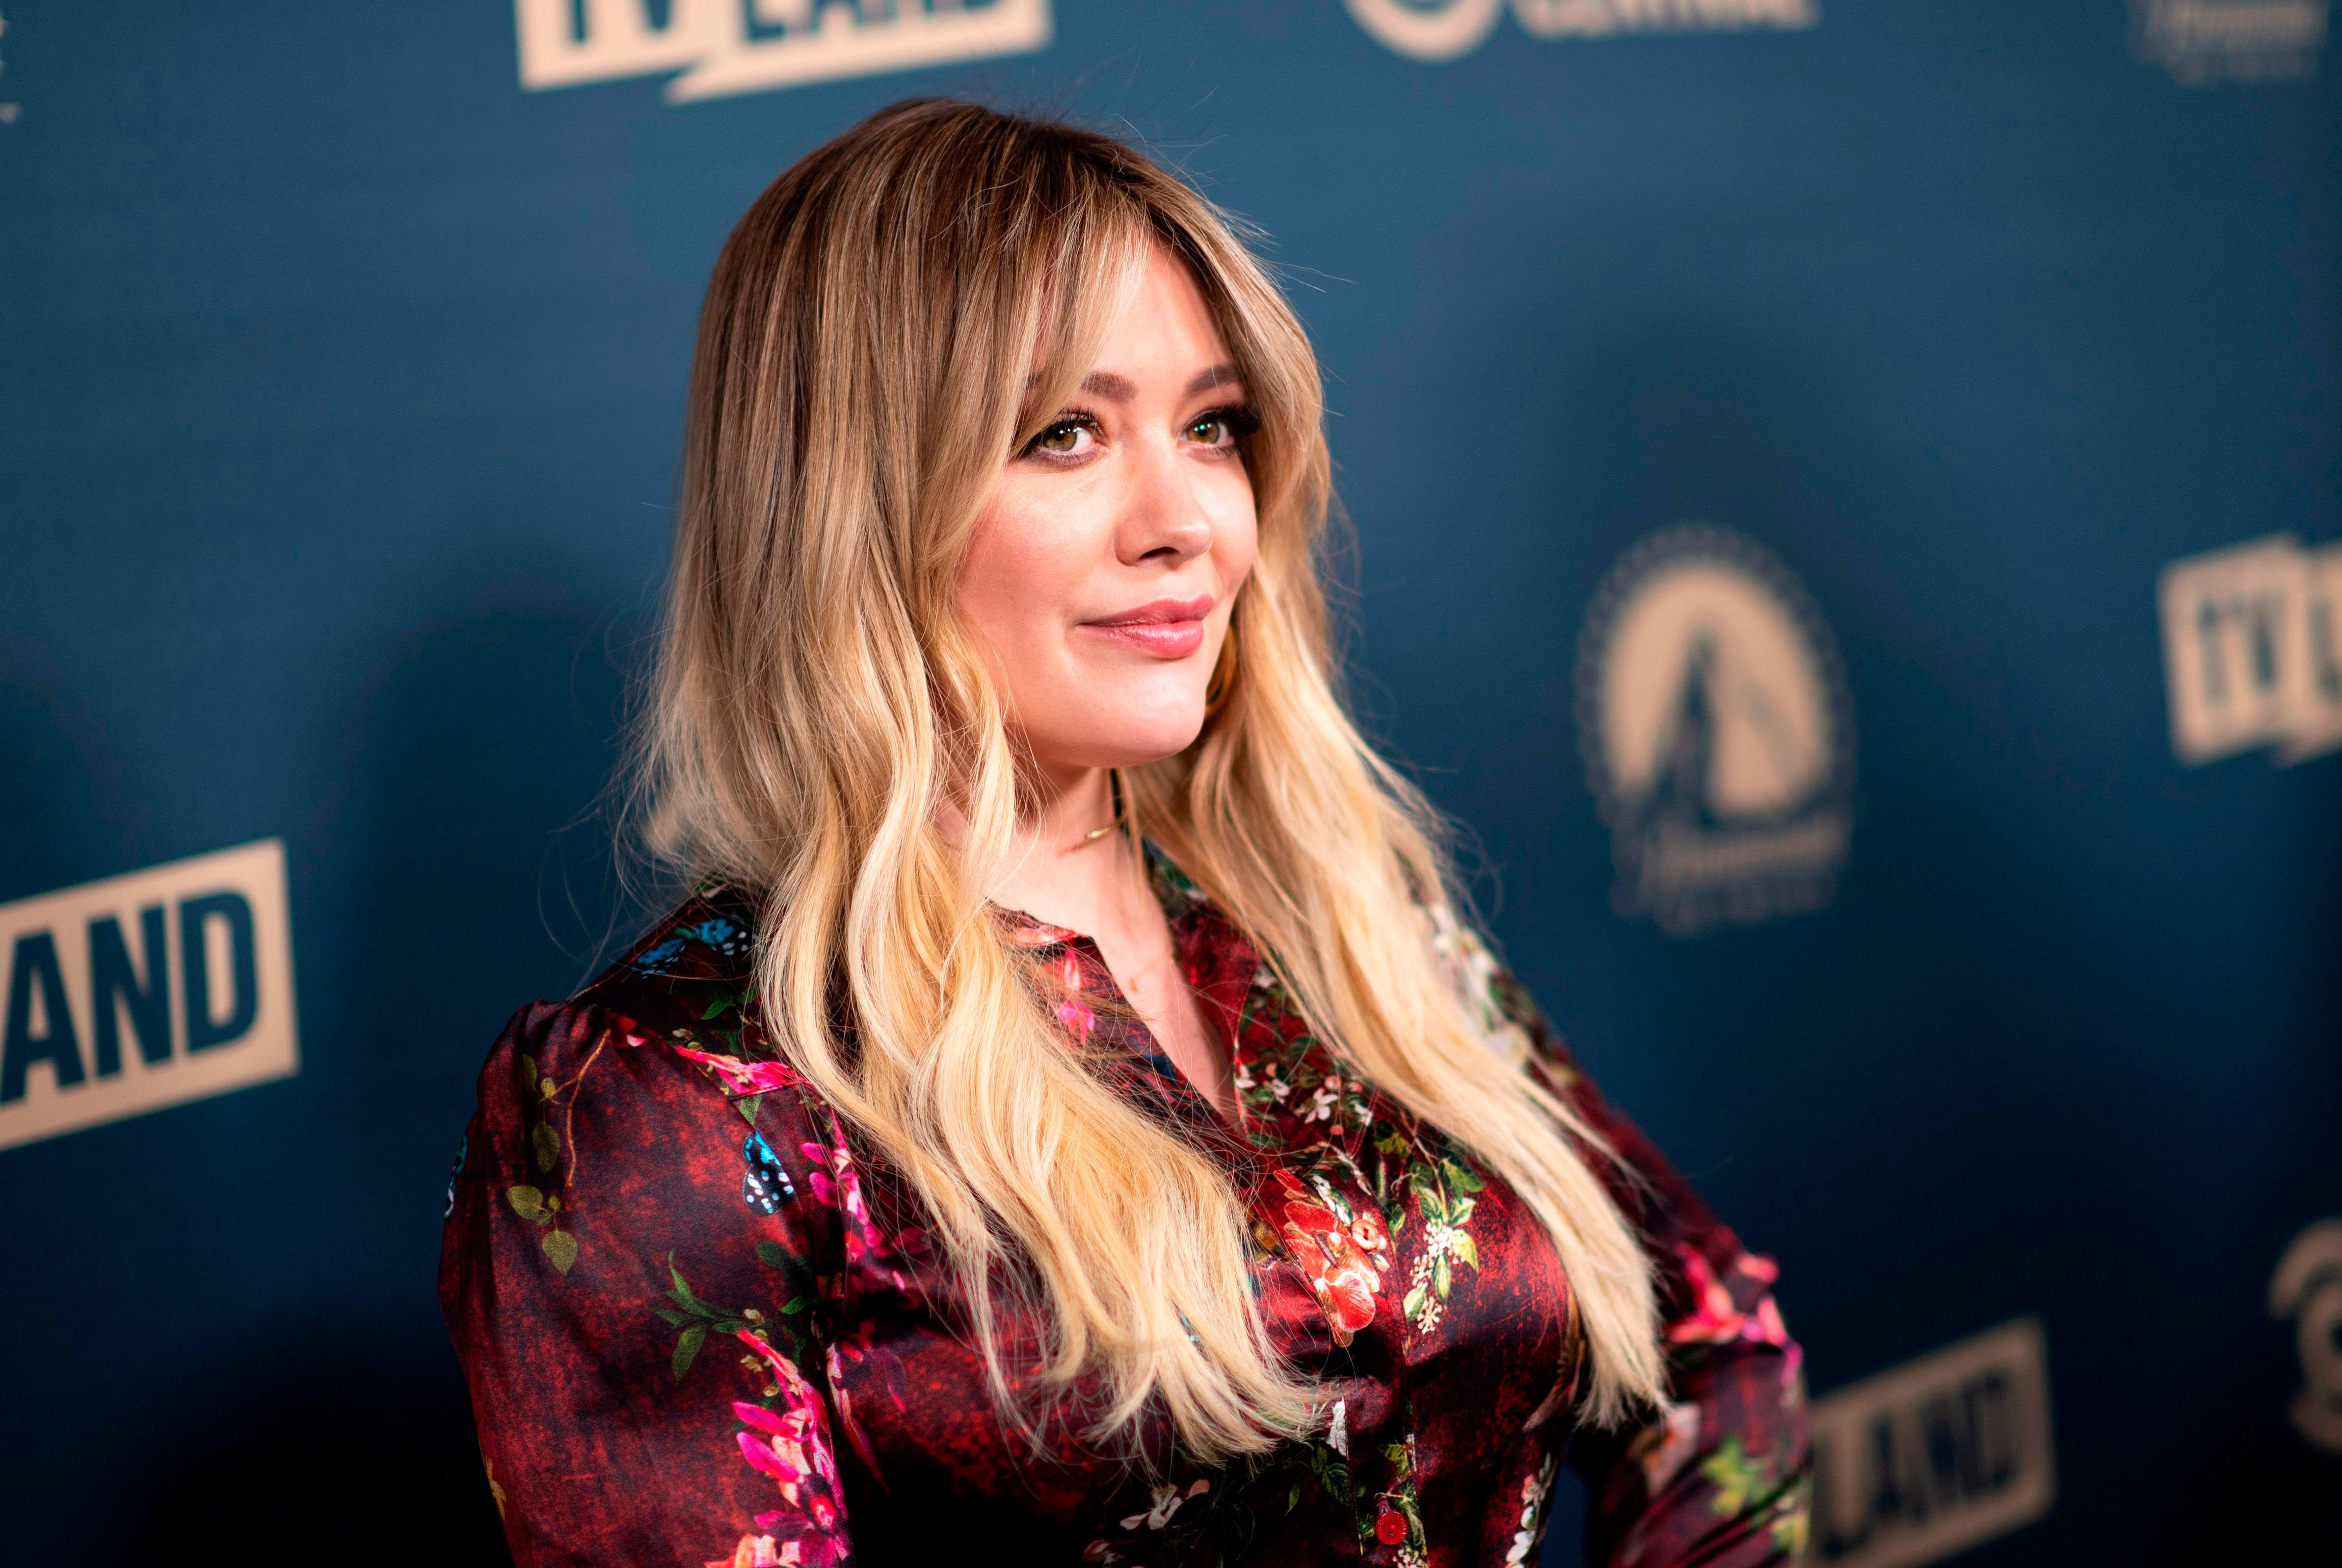 Hilary Duff asks Disney to move  Lizzie McGuire  revival to Hulu:  It would be a dream